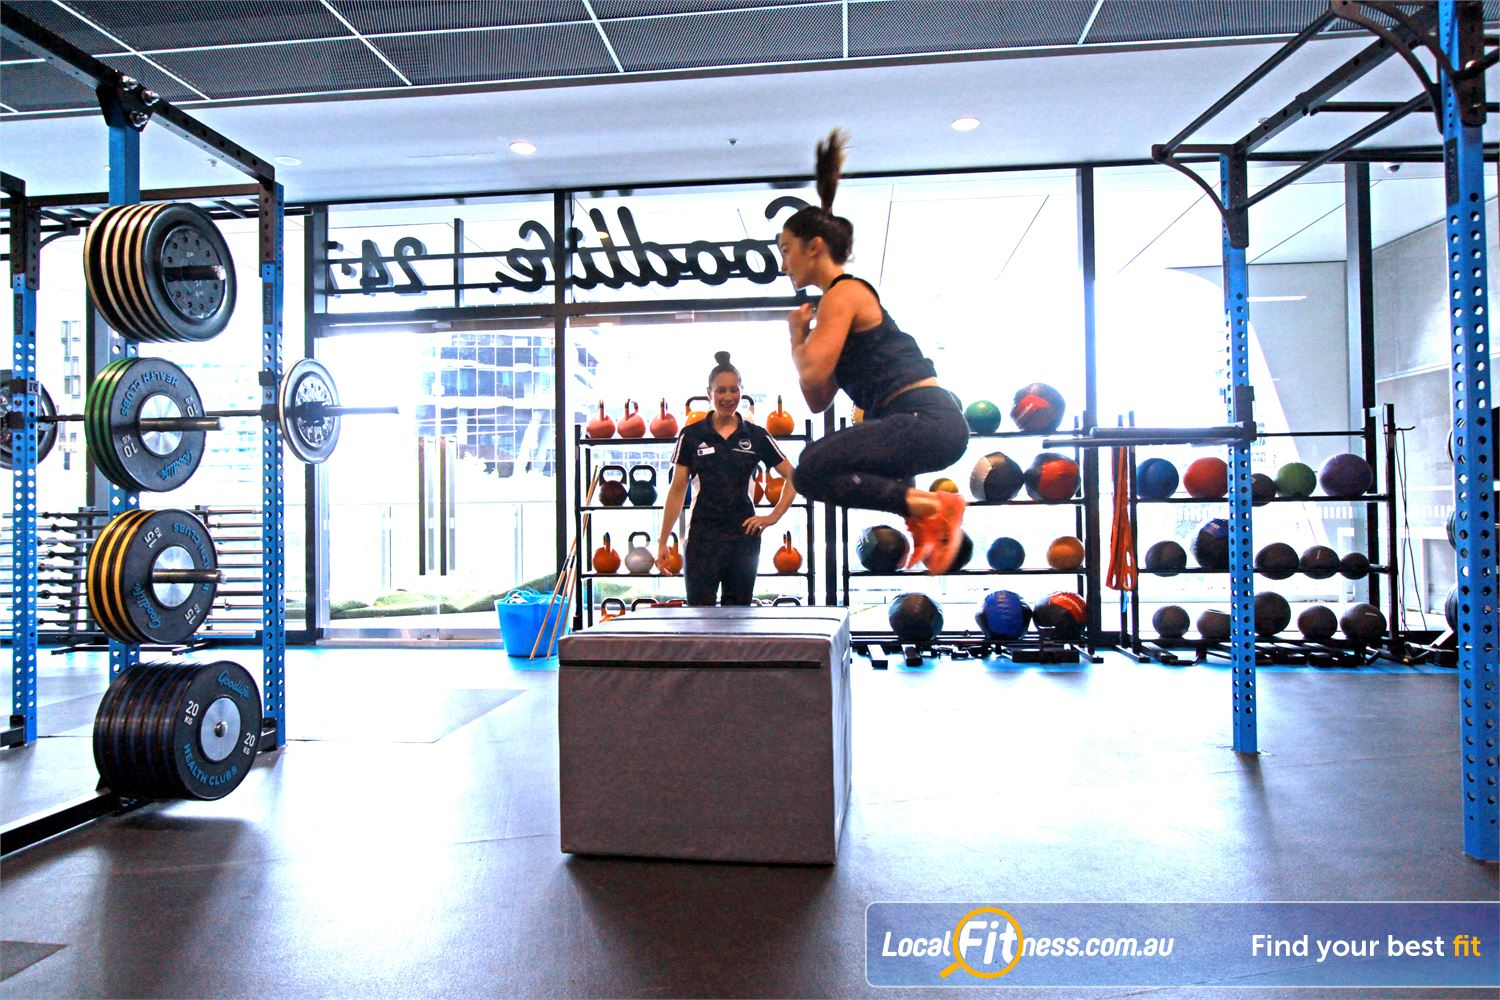 Goodlife Health Clubs Near North Melbourne Get into plyometric training at Goodlife Docklands.